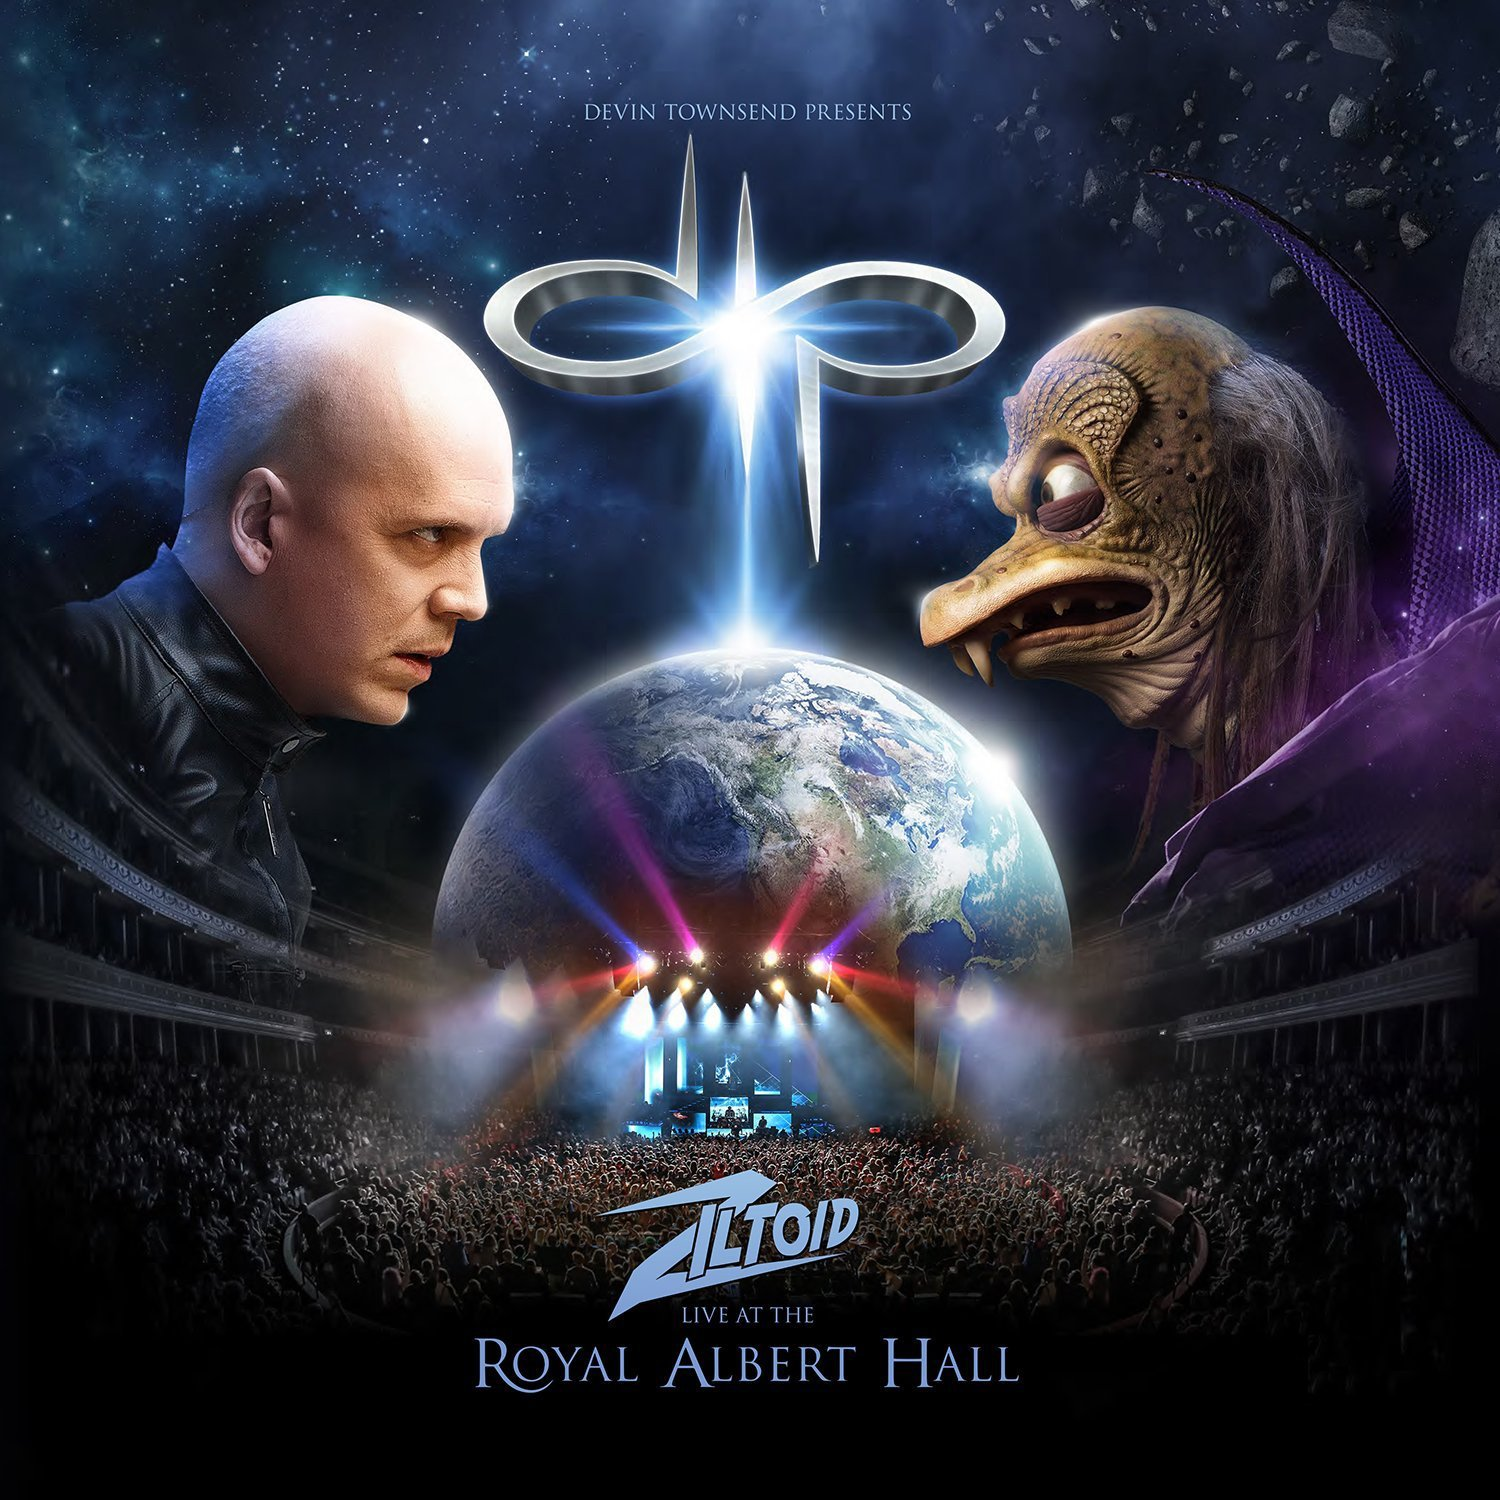 Devin Townsend Presents: Ziltoid Live at the Royal by Imports